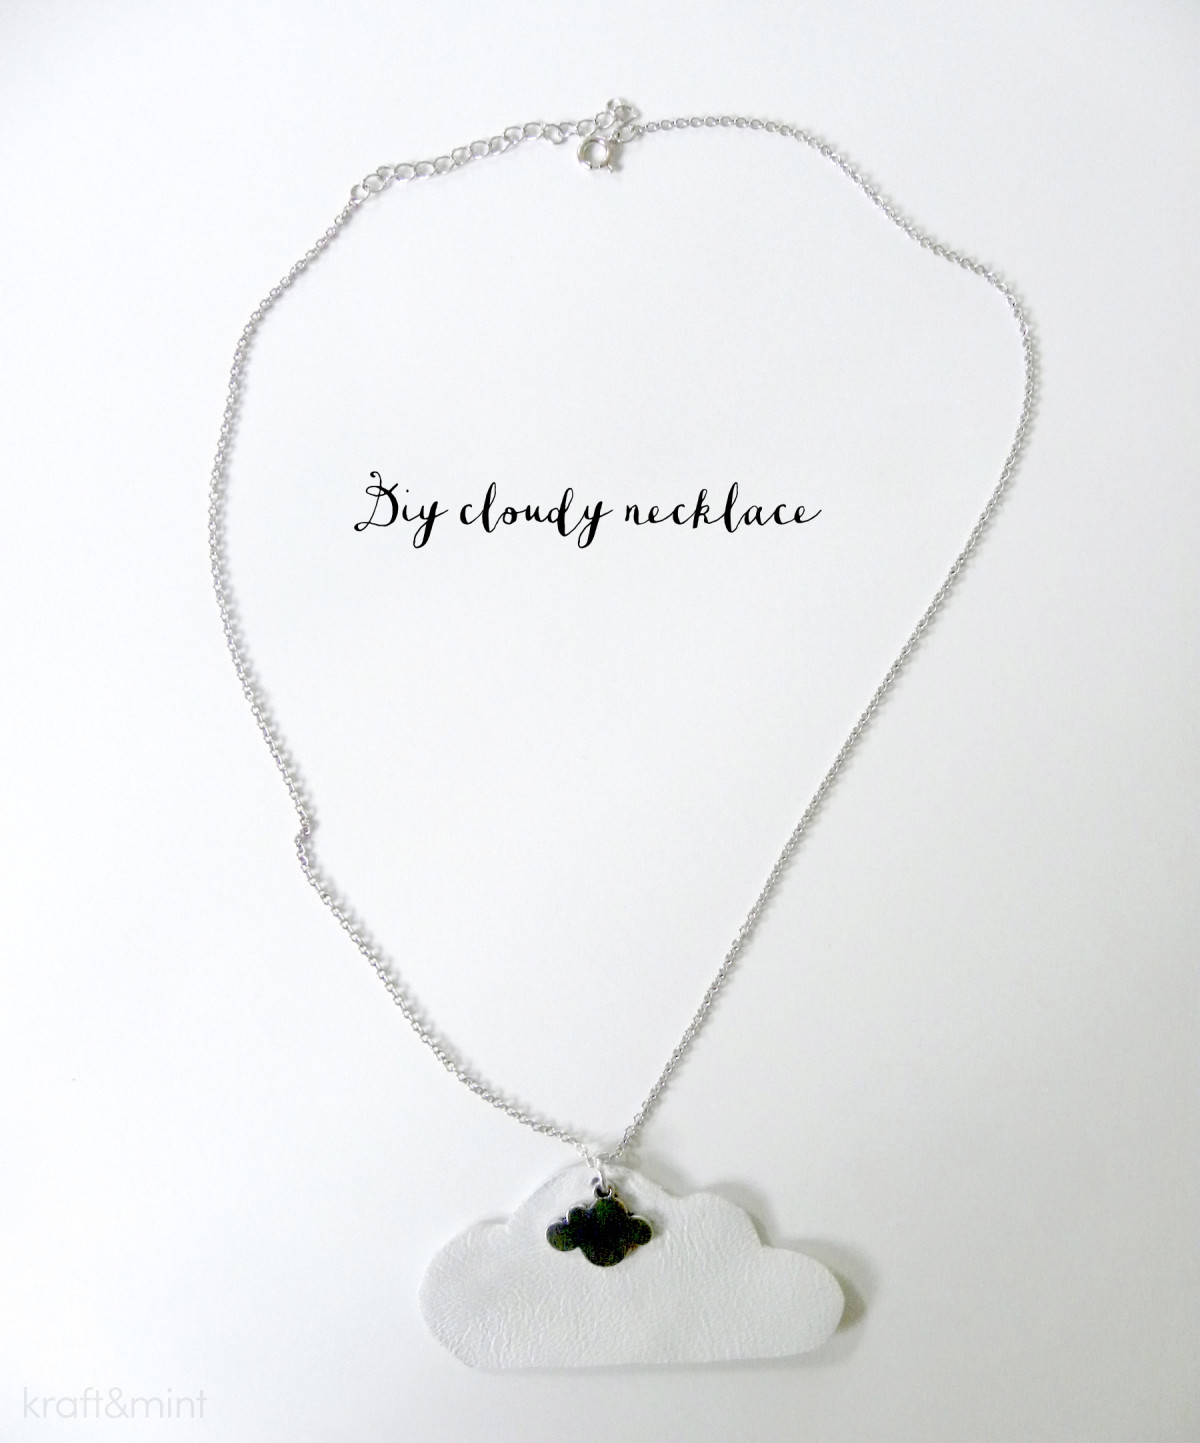 kraft&mint DIY Cloudy Necklace